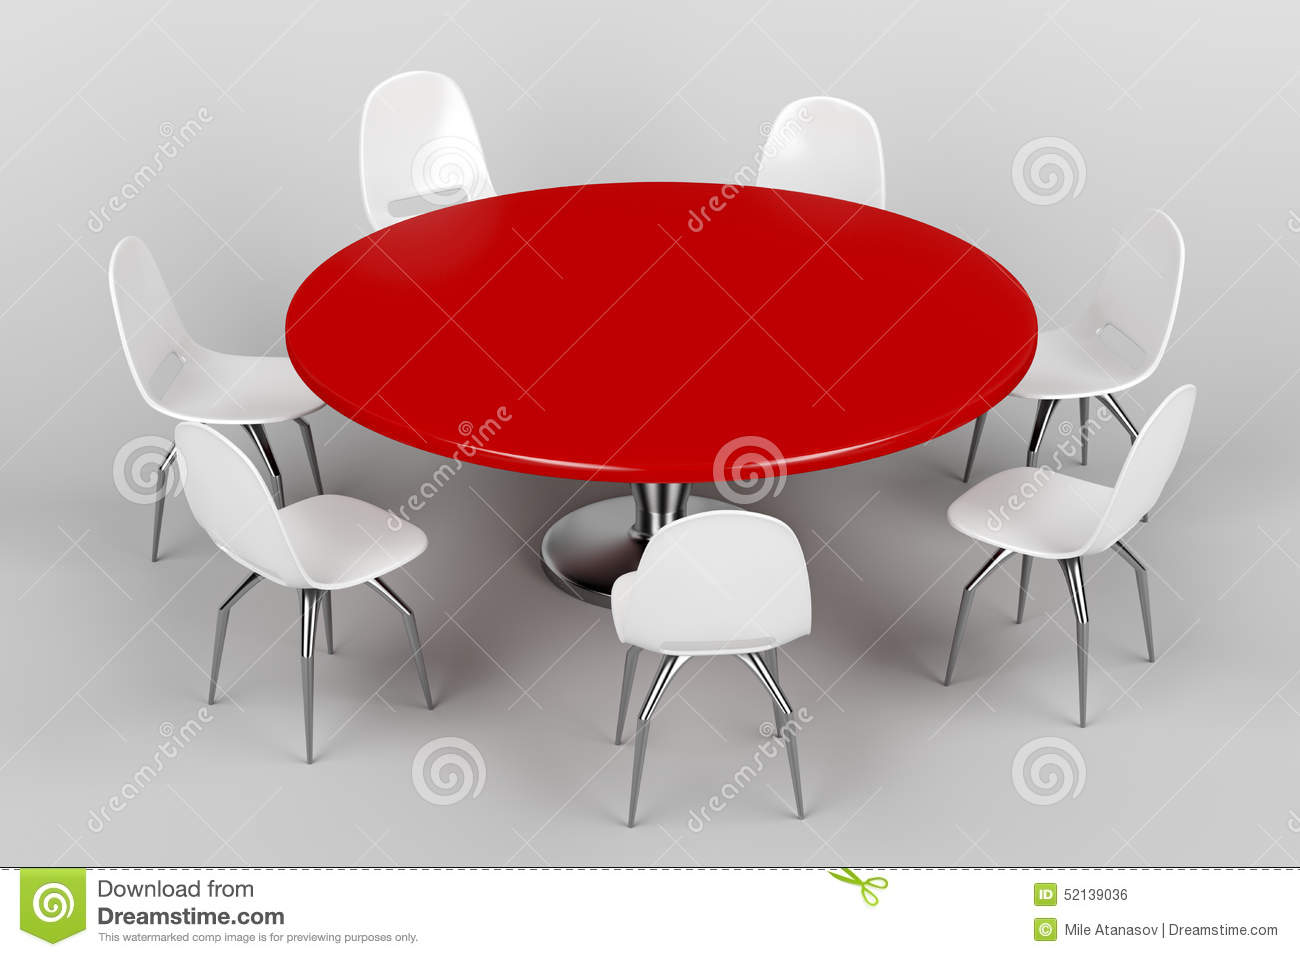 Table ronde rouge et chaises blanches illustration stock for Table ronde et chaises